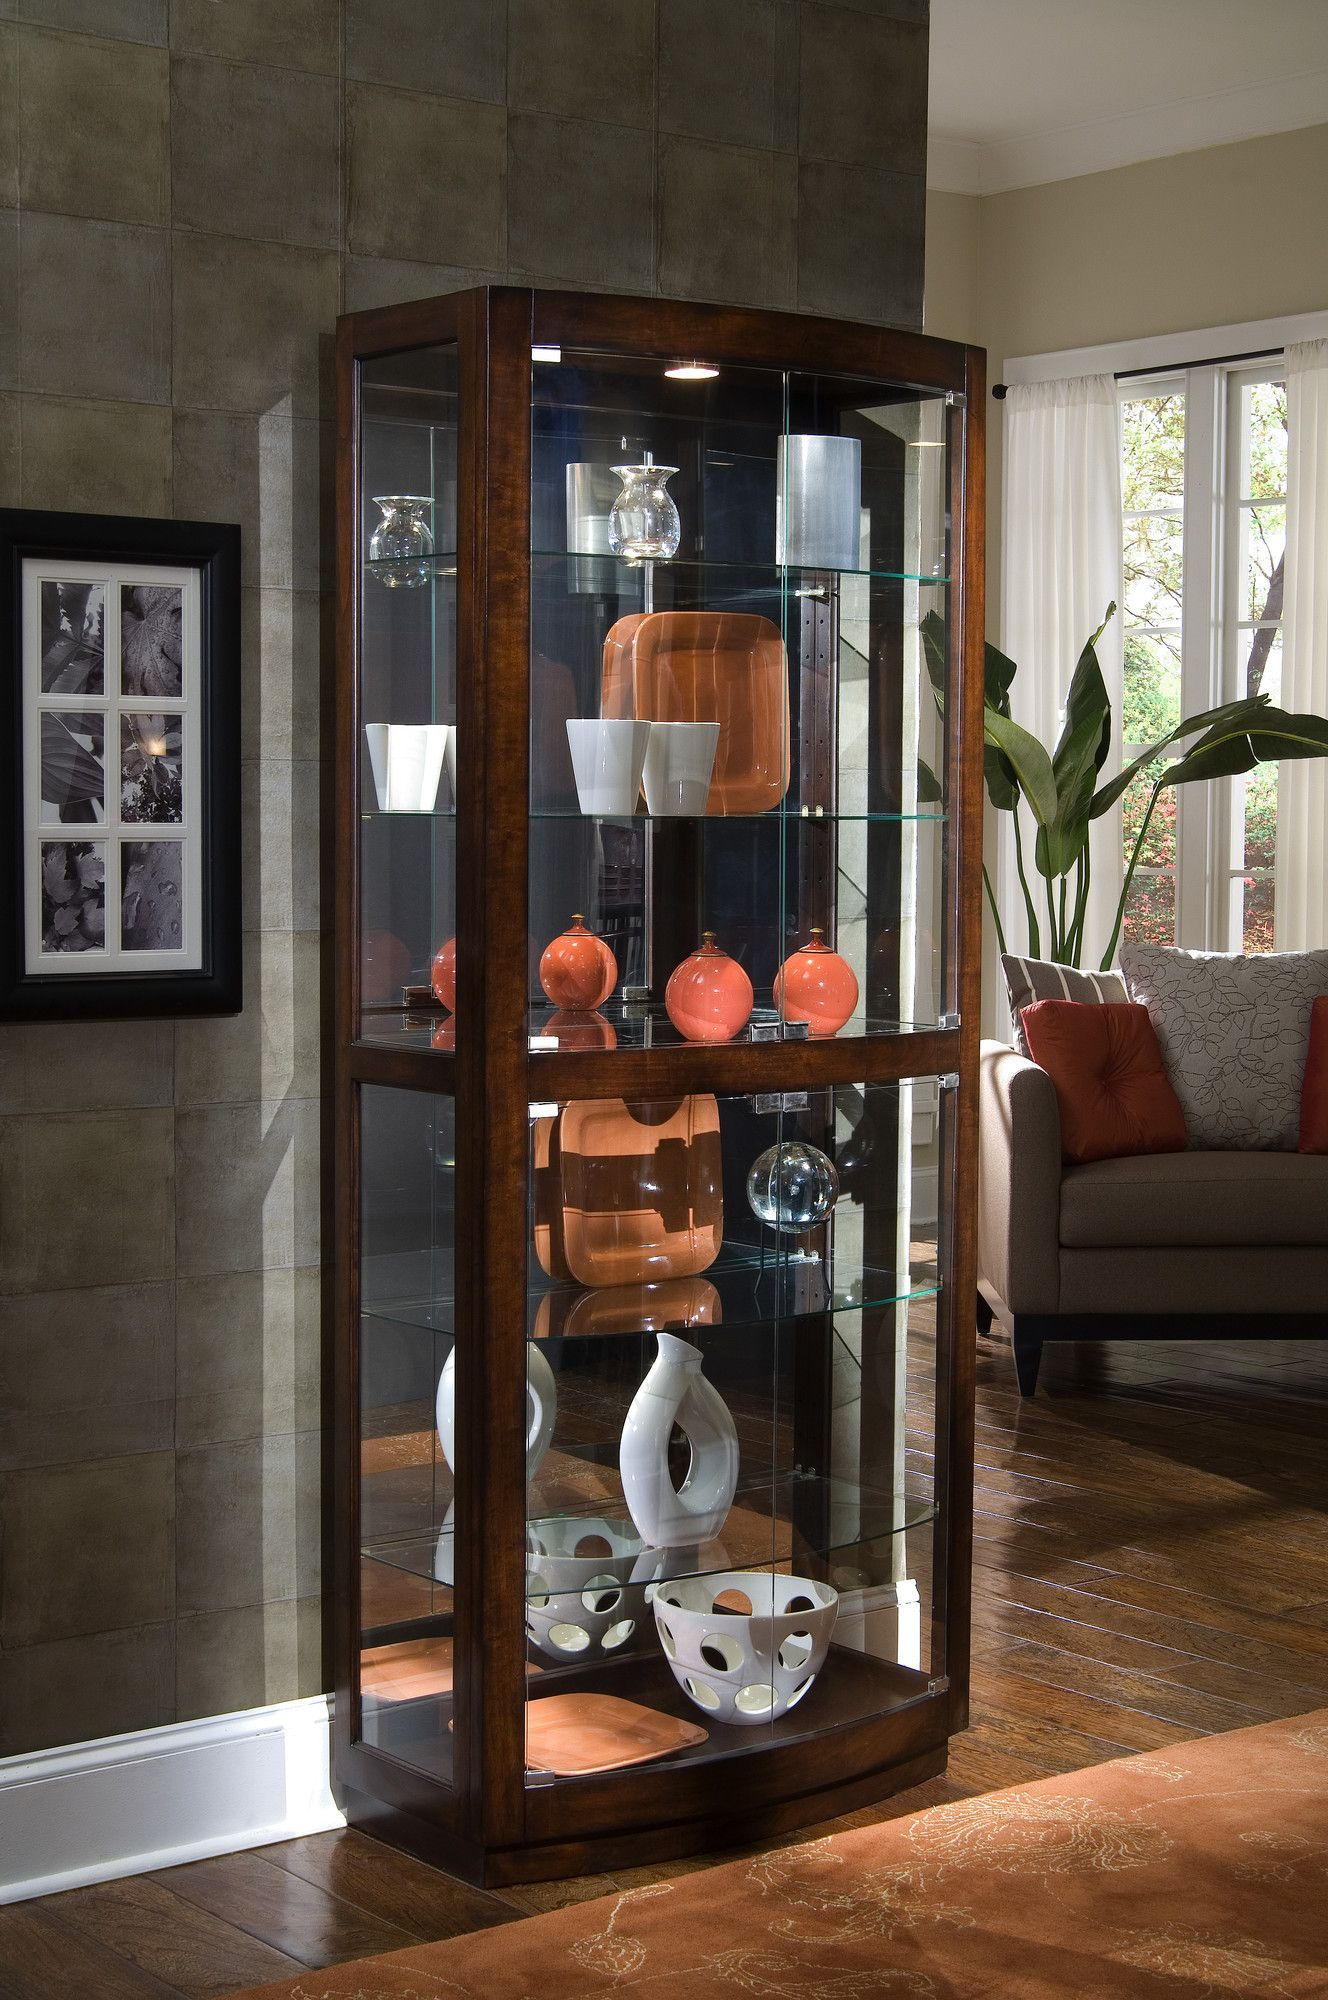 Curio Cabinet | Indian in 2019 | Glass curio cabinets ...